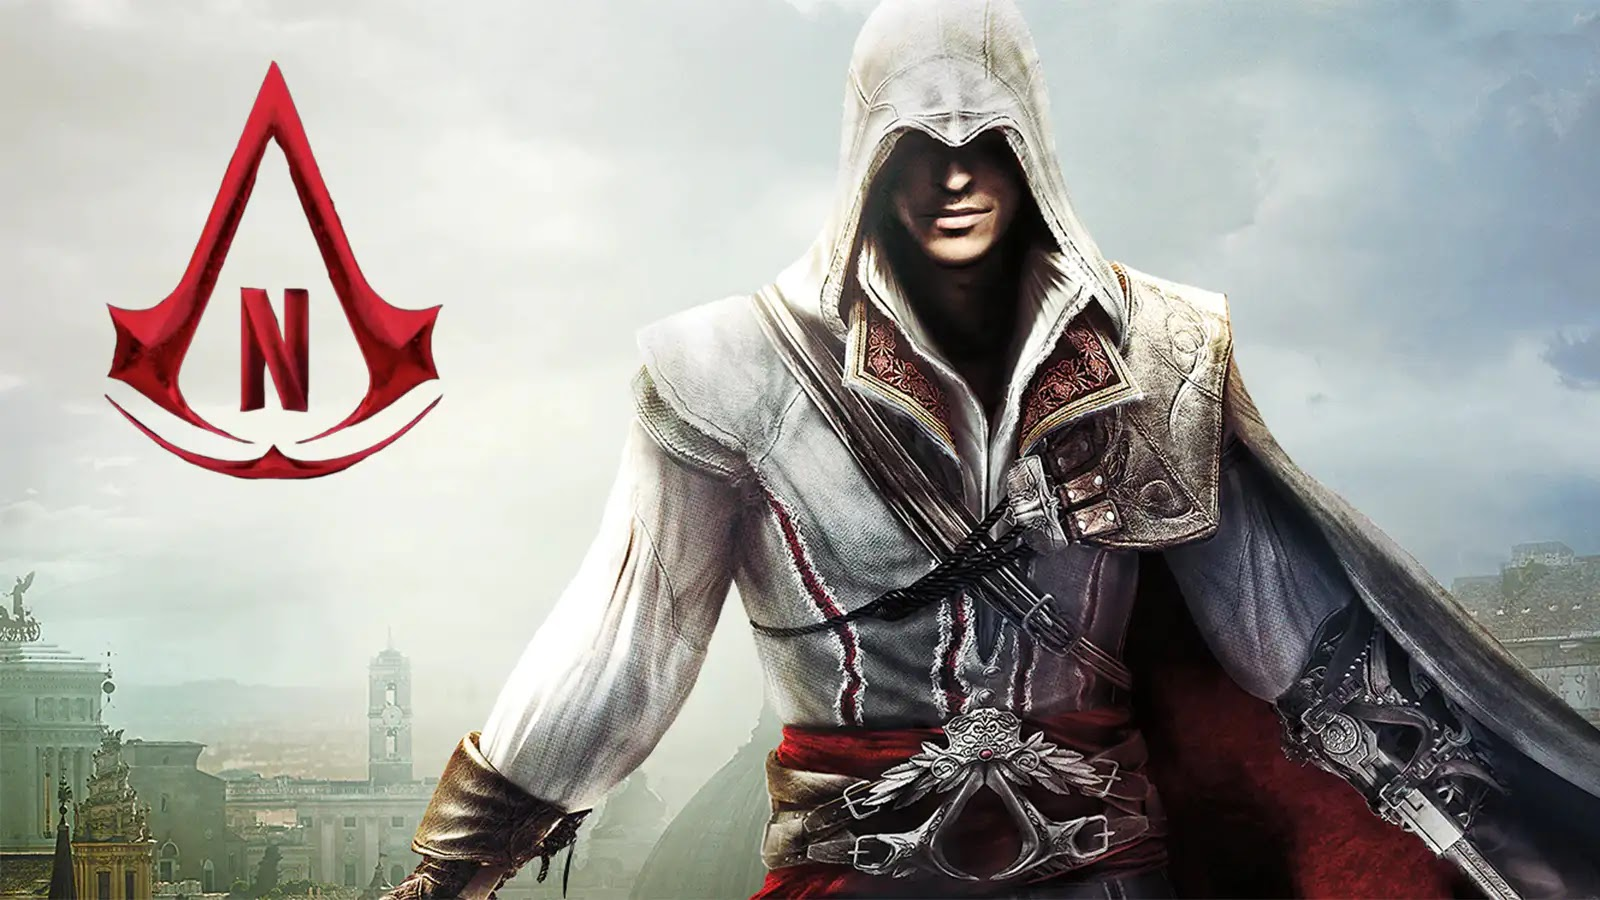 Netflix Live-Action Assassin's Creed Web Series in Making